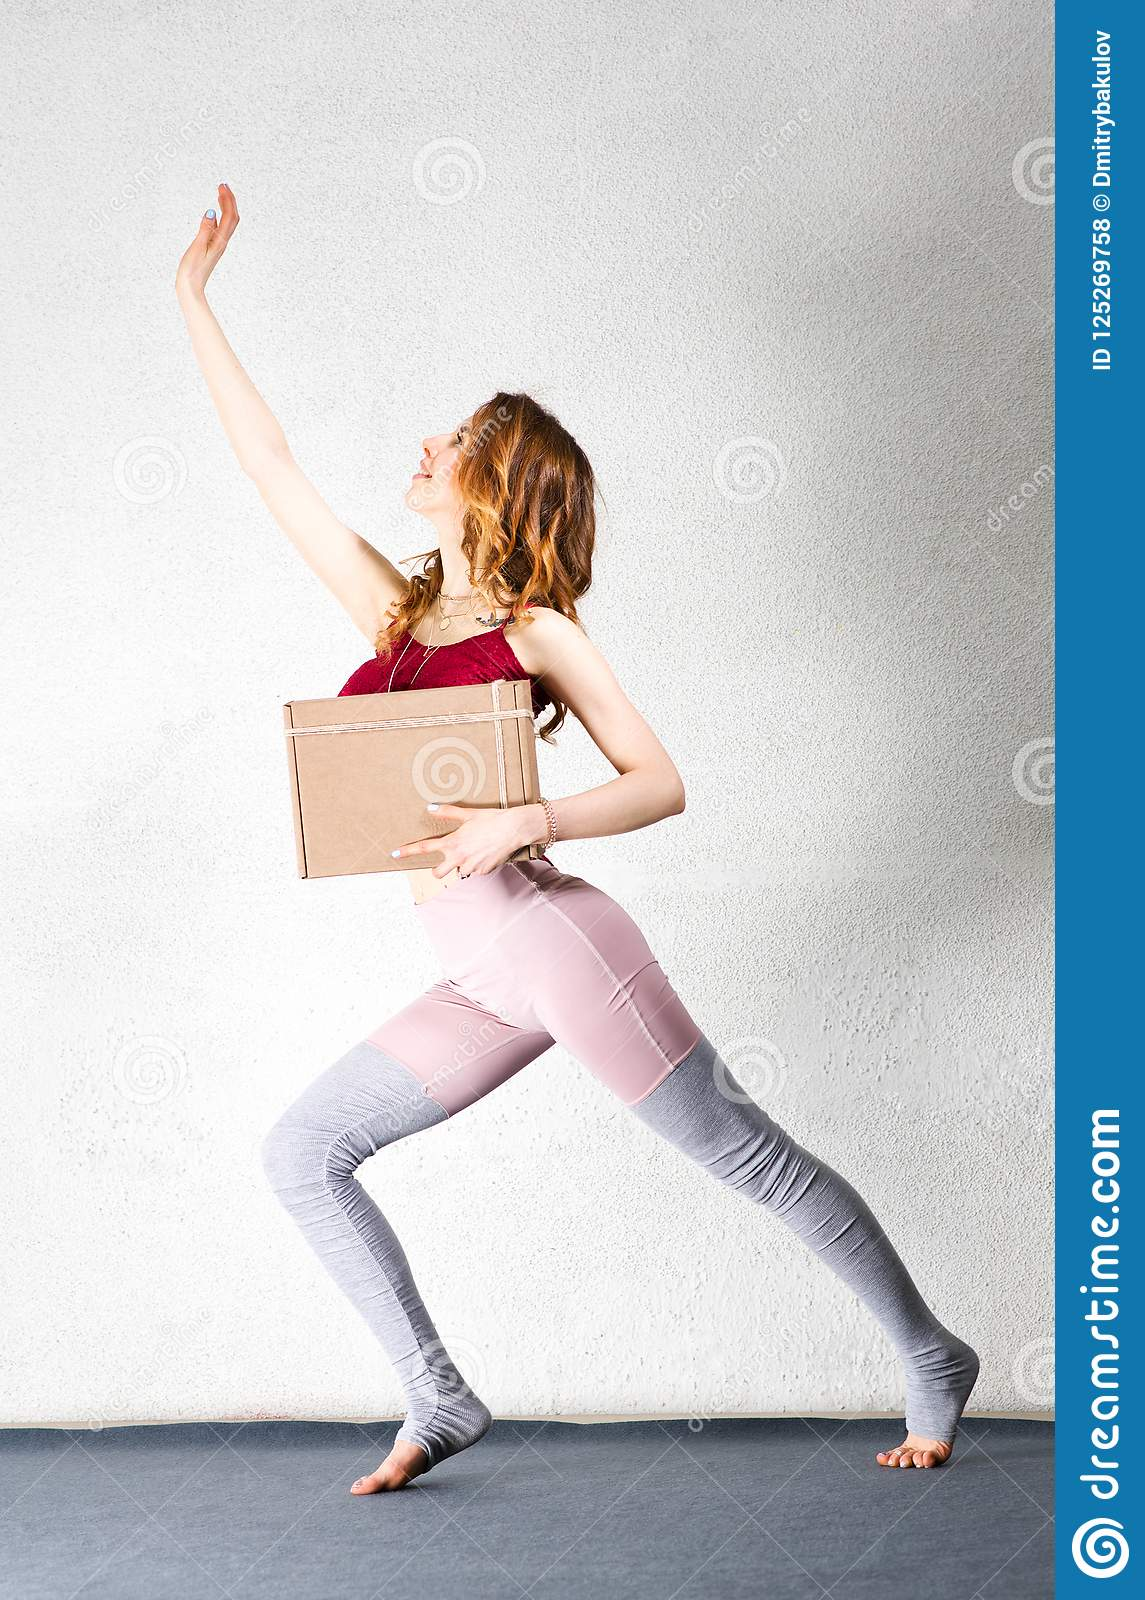 Young woman posing with a box in her hands. Package for yoga classes